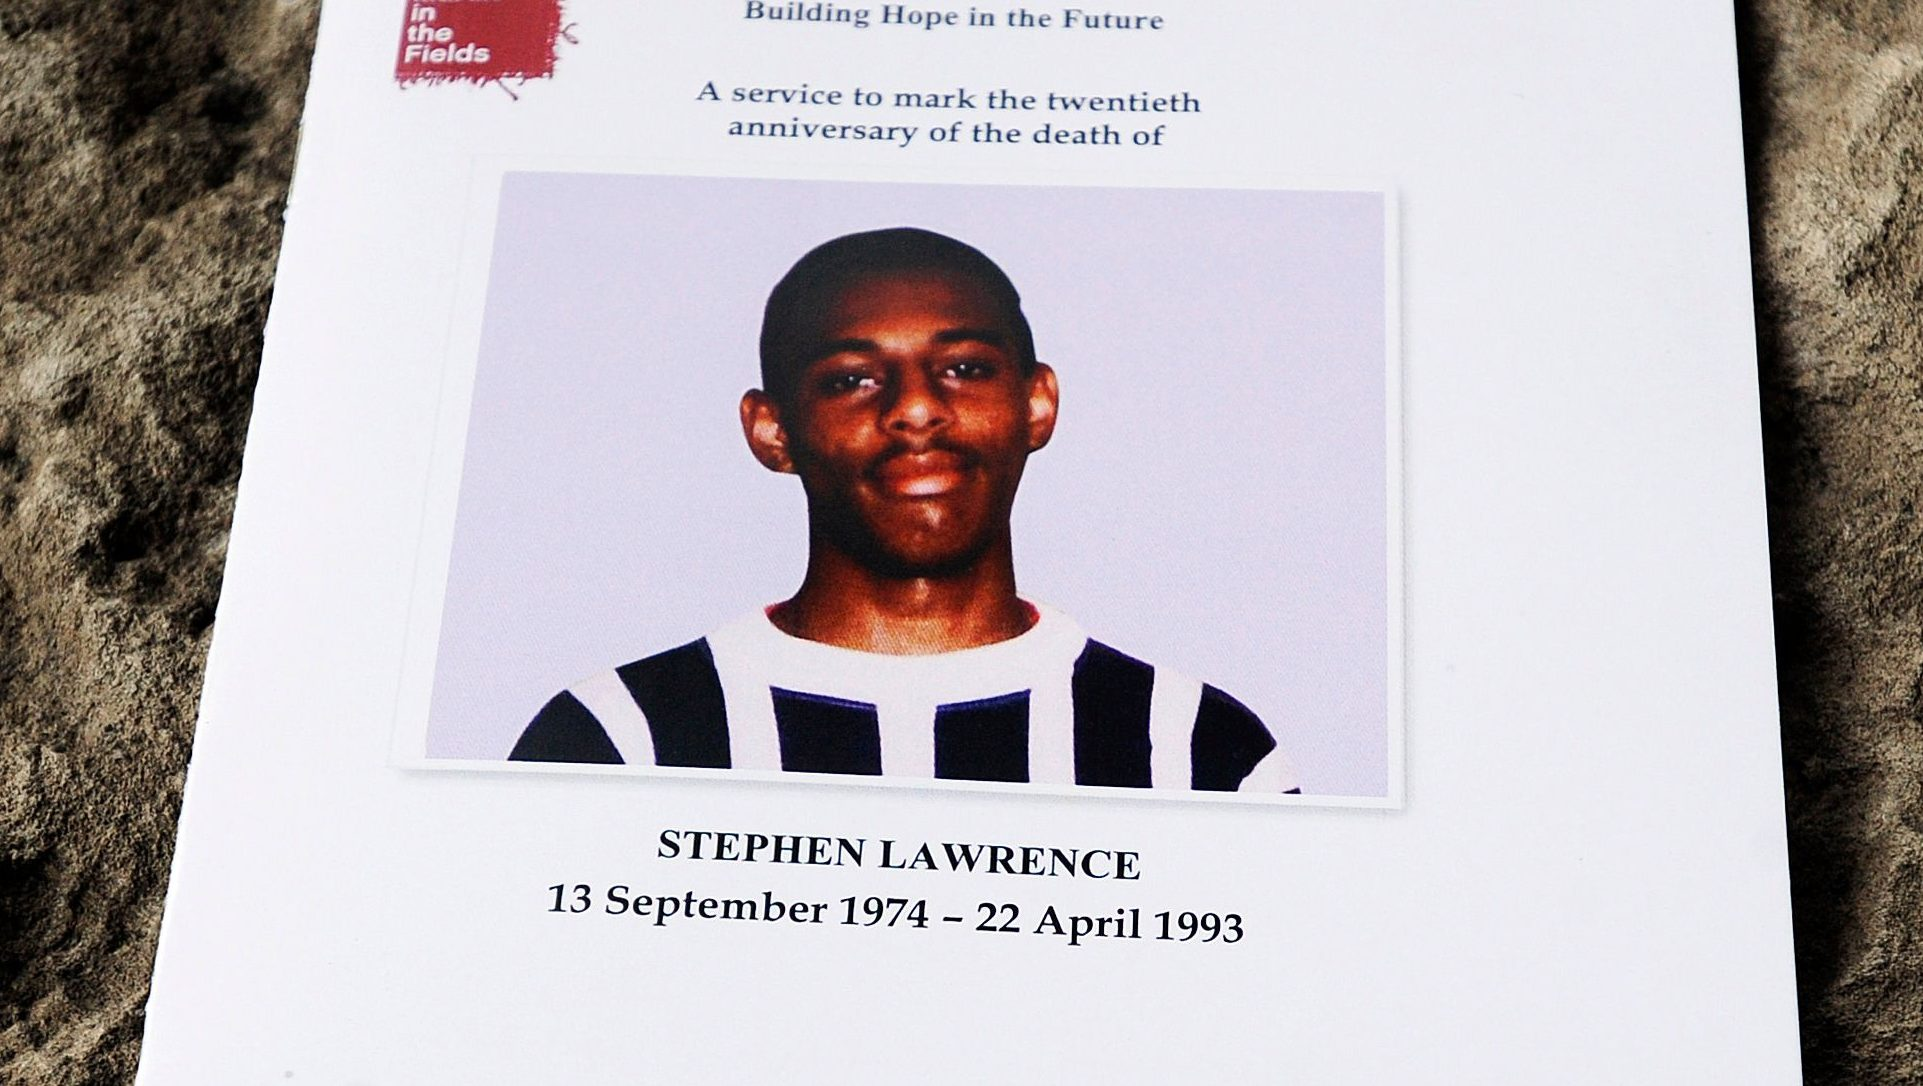 epa03673014 An order of service is shown at a memorial service at St Martins-in-the-Fields Church in Trafalgar Square, central London, England, 22 April 2013, for Stephen who was murdered 20 years to the day. Stephen Lawrence, aged 18, was stabbed to death by a gang of white youths in an unprovoked attack while waiting for a bus in south-east London in April 1993.  EPA/FACUNDO ARRIZABALAGA